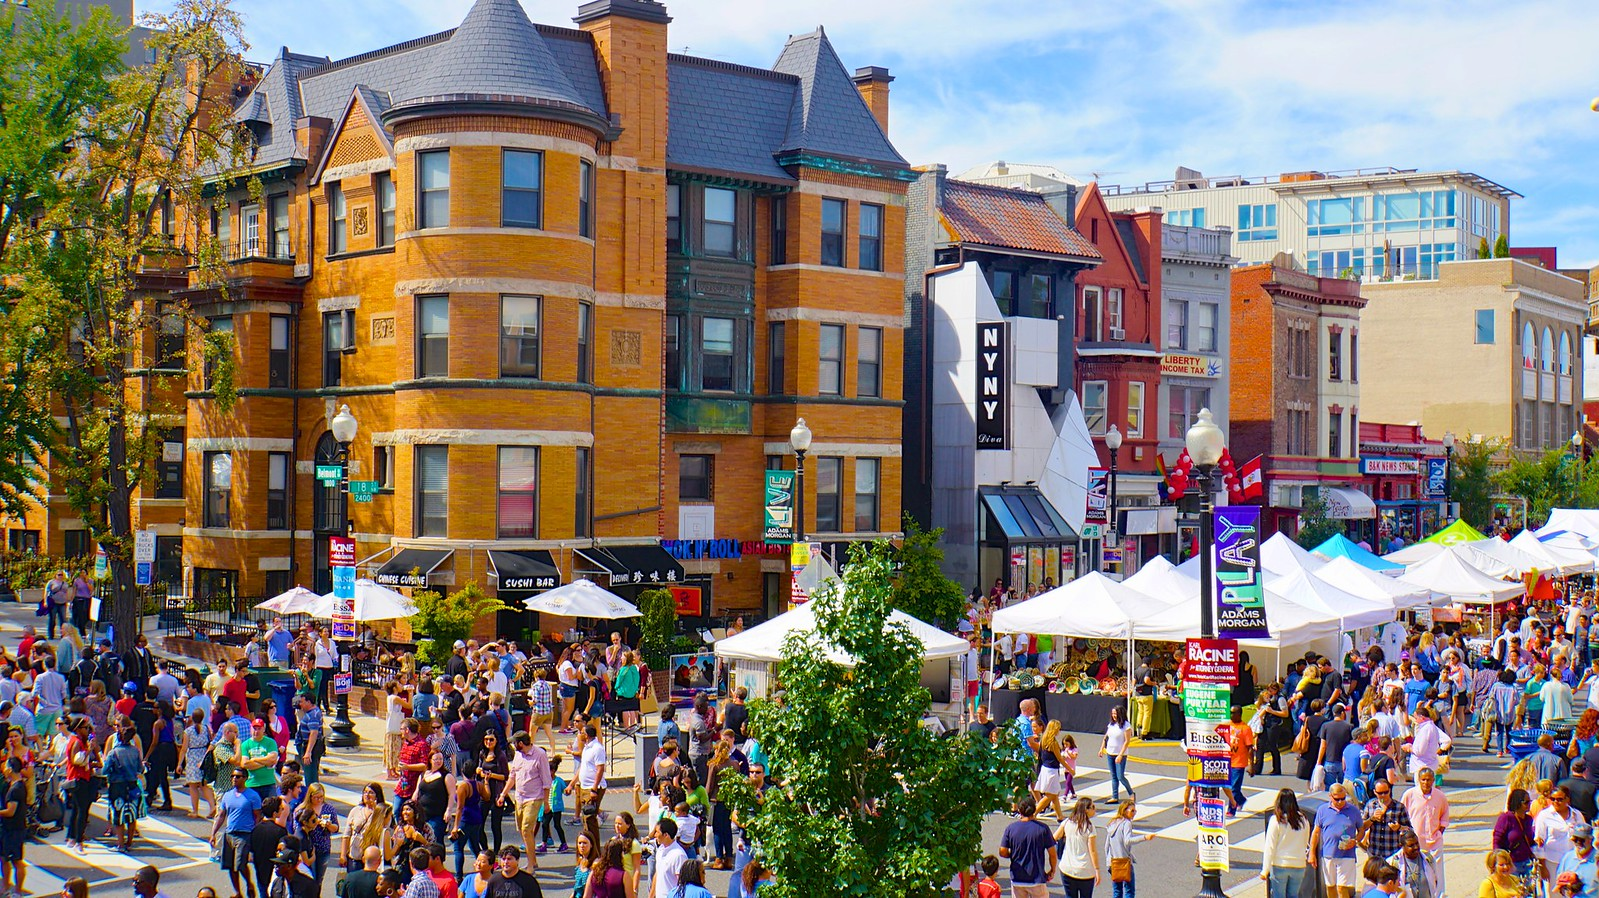 Thanks for using my photo, Thrillist, in Things to Do in Washington DC This Weekend: September 8-10, 2017